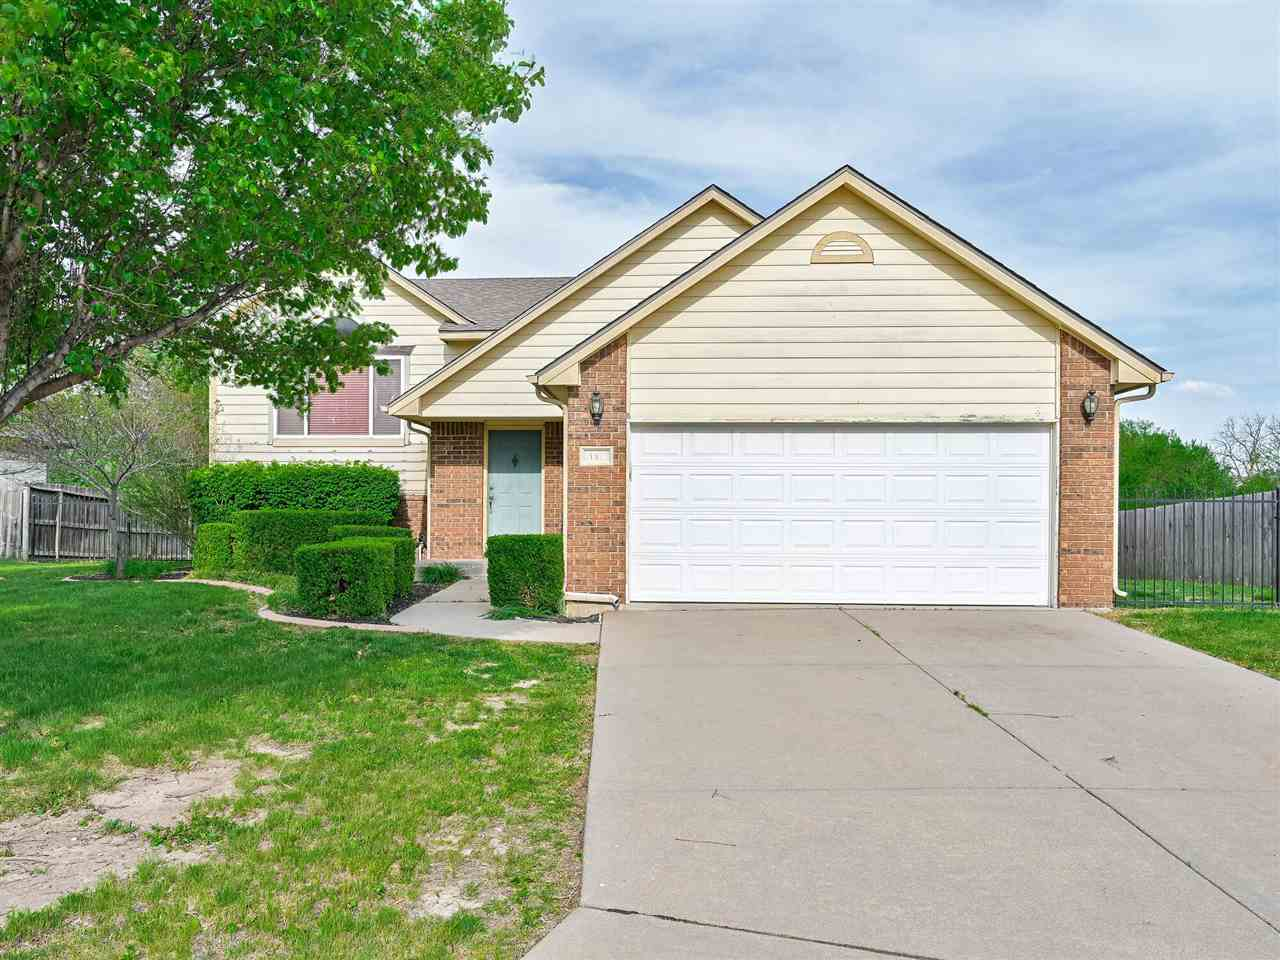 This desirable 4 bedroom, 3 bath, 2 car garage home is in the GODDARD school district and on a cul-d